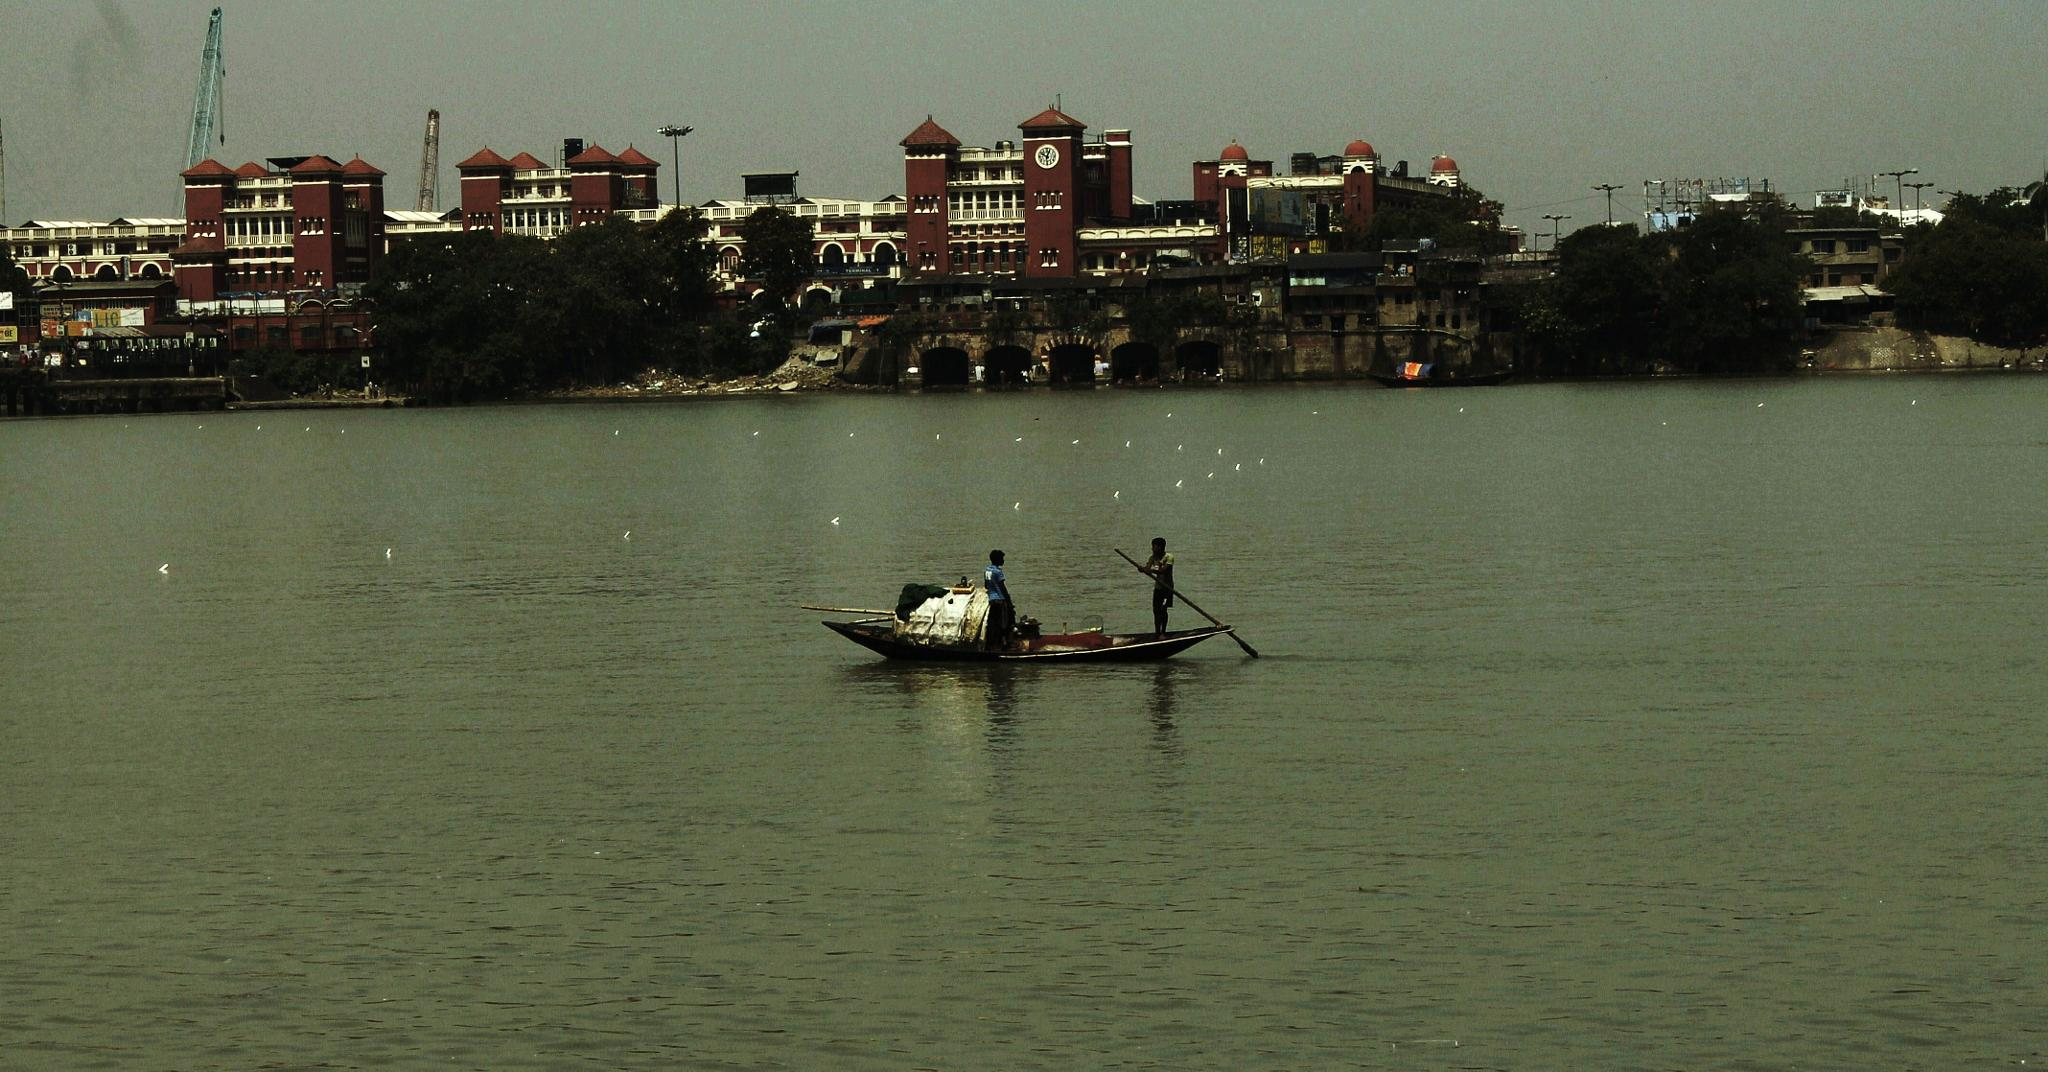 River Ganges with enigmatic Howrah Station in the background by subhagatadey